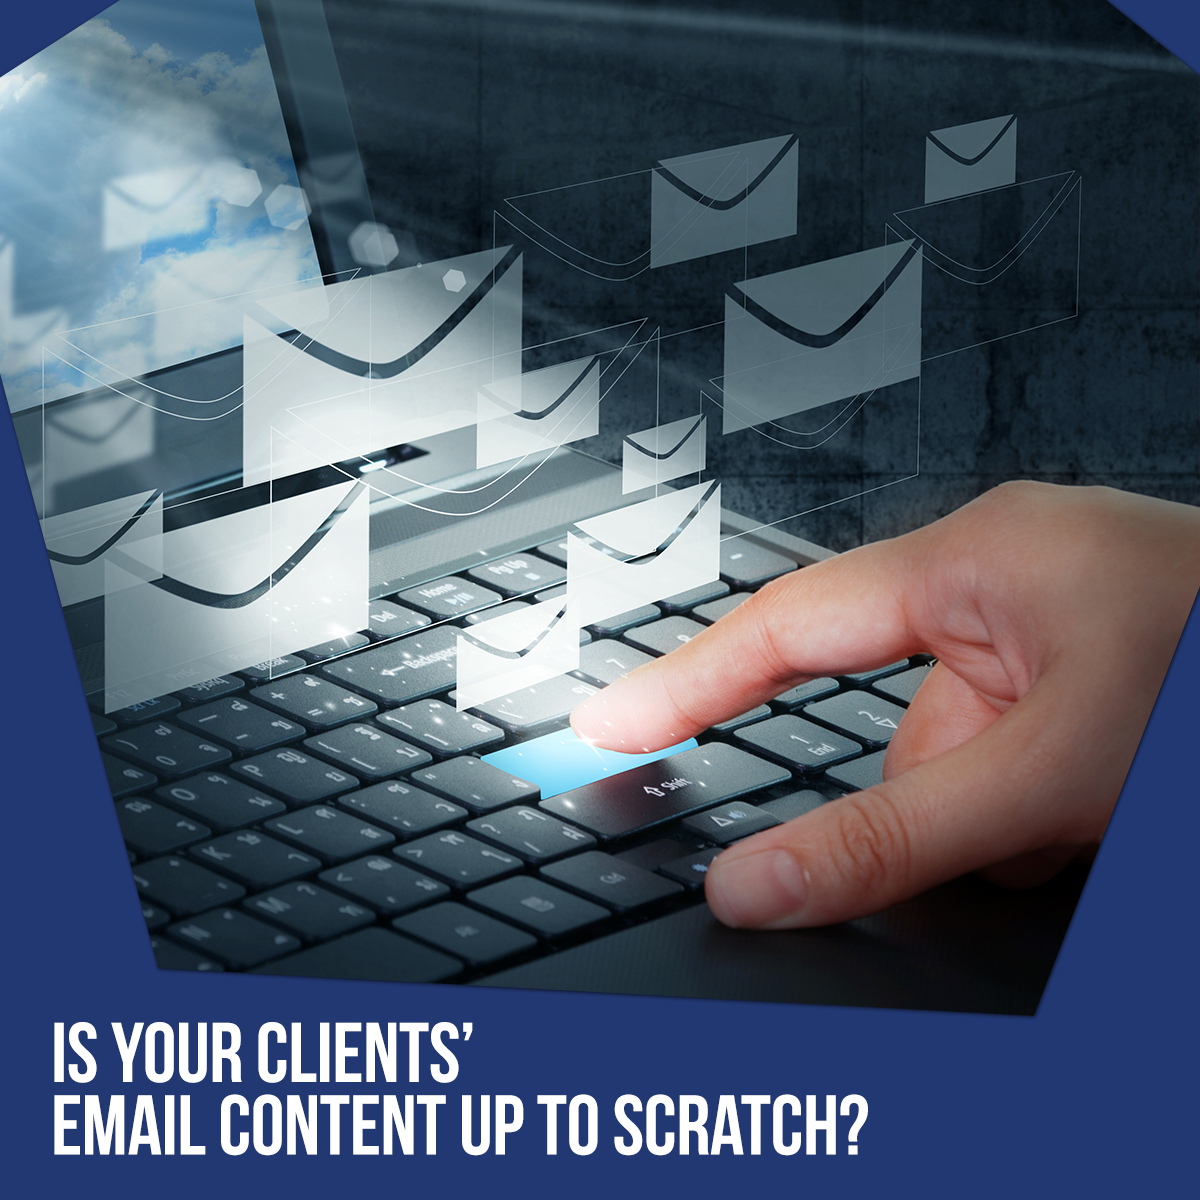 Did you know most people would prefer leaving an email